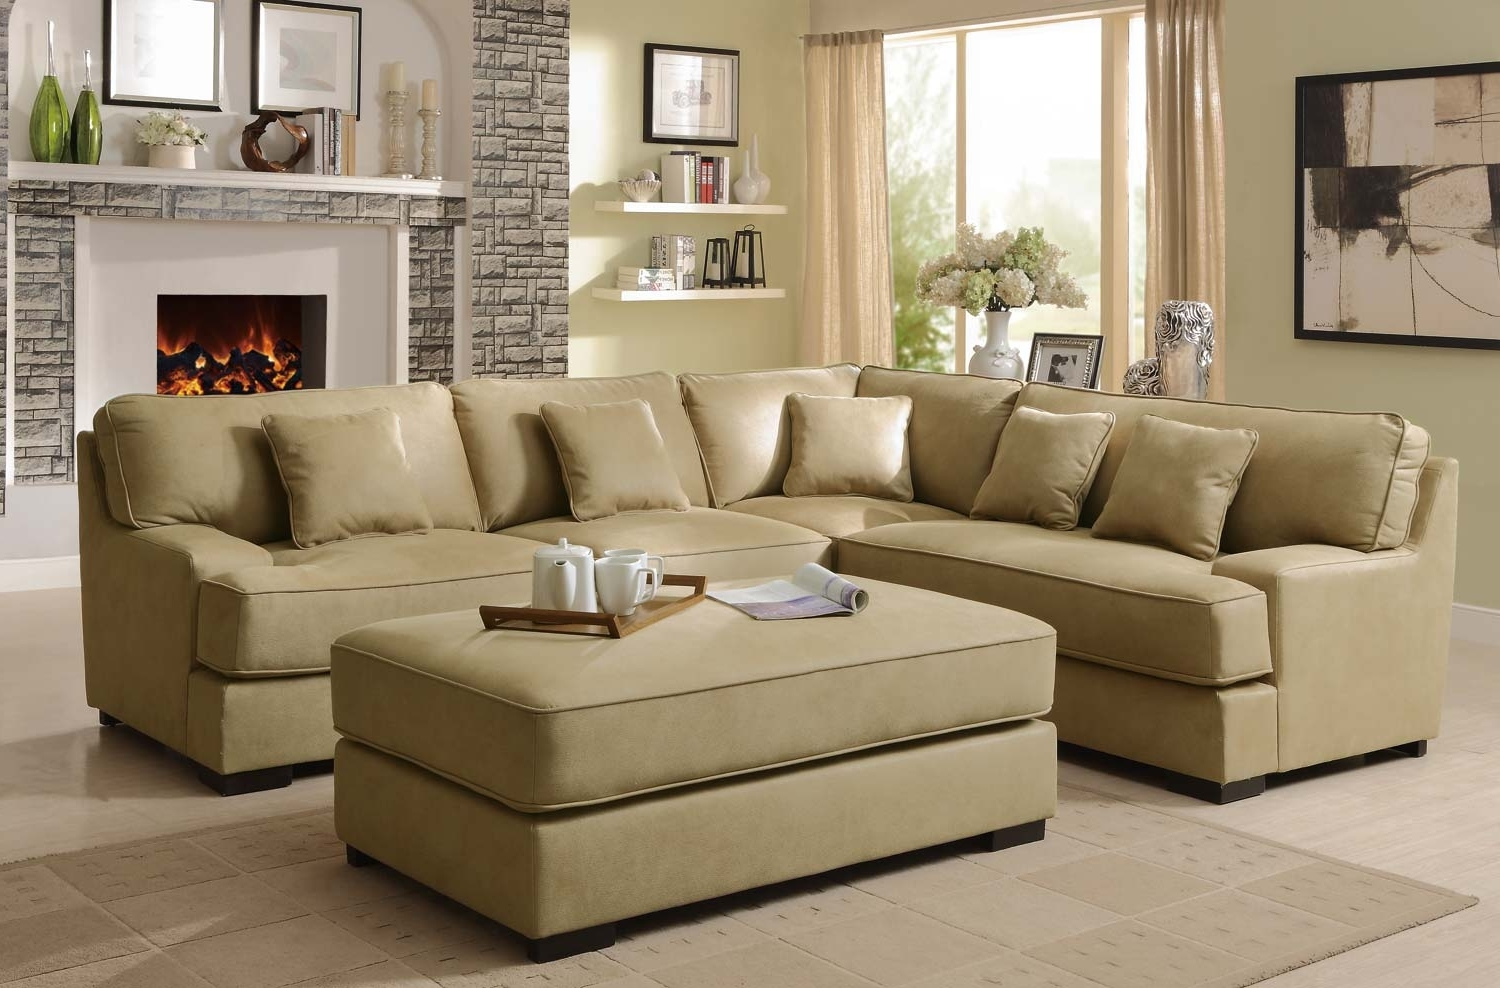 Most Recently Released Sectional Sofa Design: Amazing Beige Sectional Sofas Beige Leather Intended For Beige Sectional Sofas (View 7 of 20)